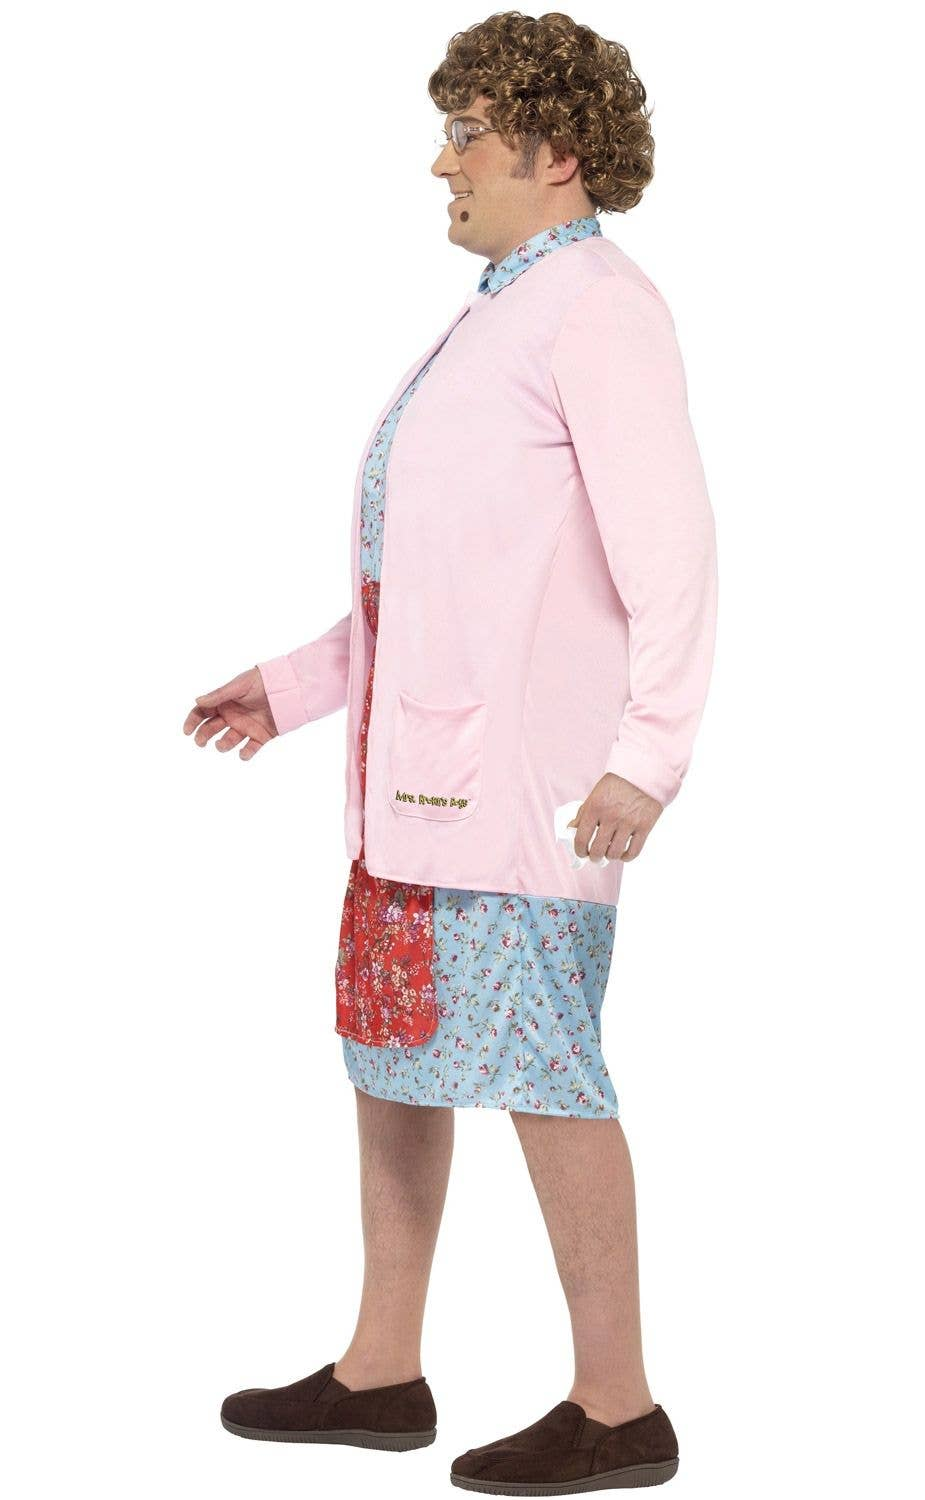 Old Lady Agnes Brown Men's Costume | Mrs Brown's Boy's Costume